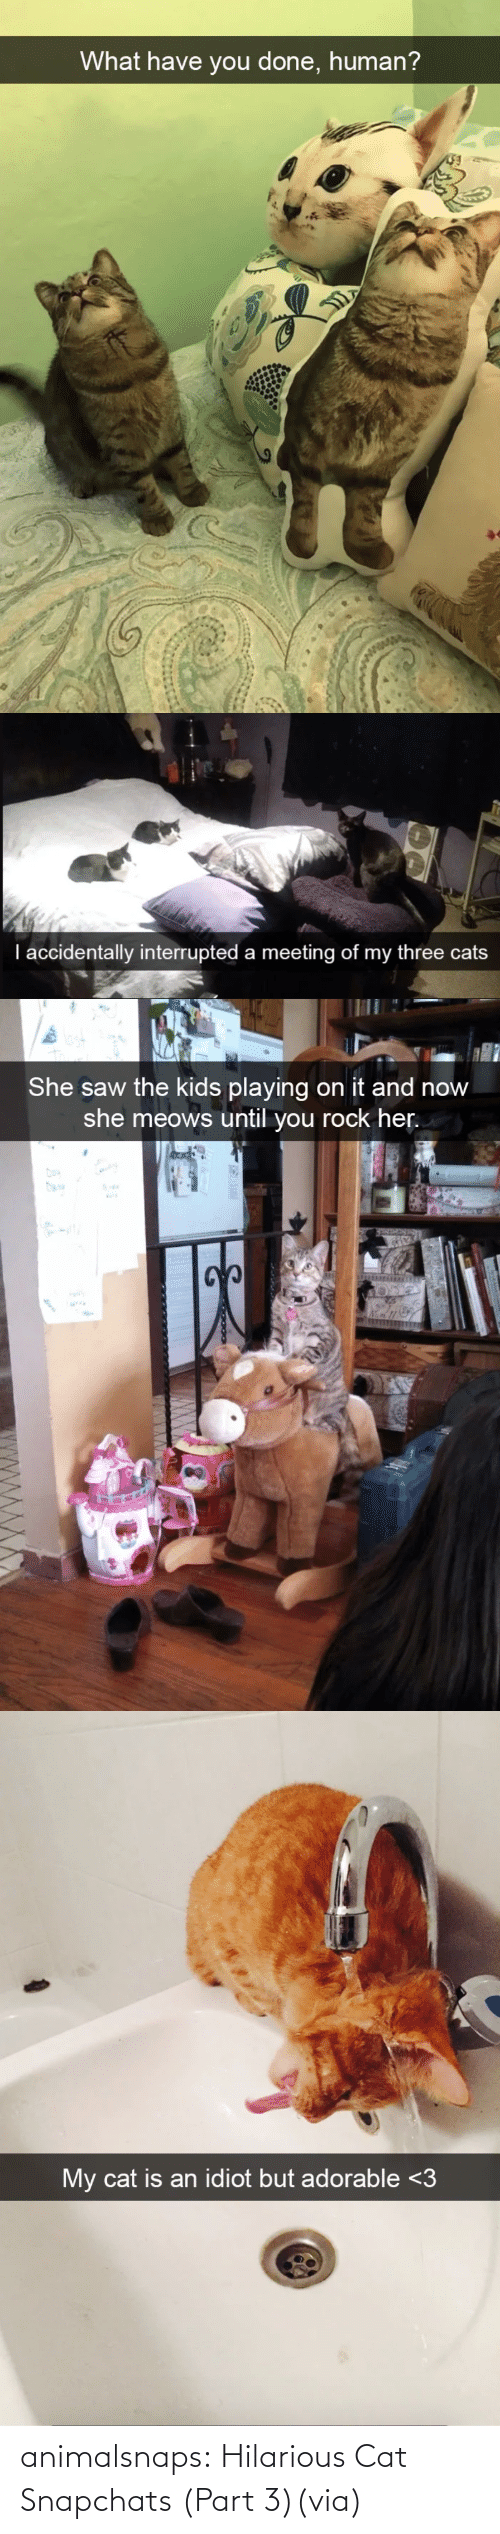 Forever: animalsnaps:  Hilarious Cat Snapchats (Part 3)(via)